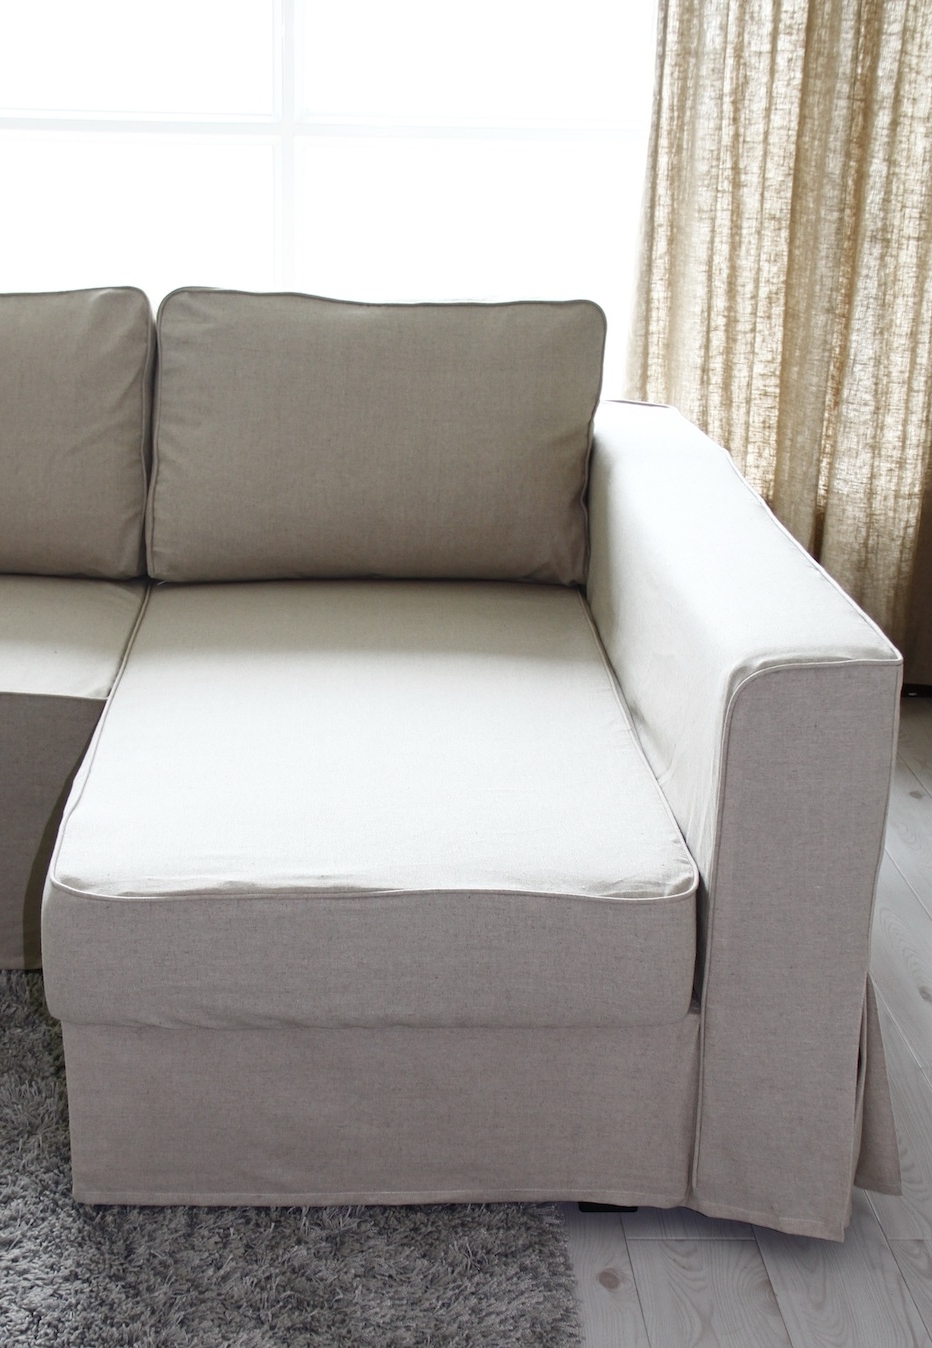 Most Current Fit Linen Manstad Sofa Slipcovers Now Available With Regard To Manstad Sofas (View 12 of 20)